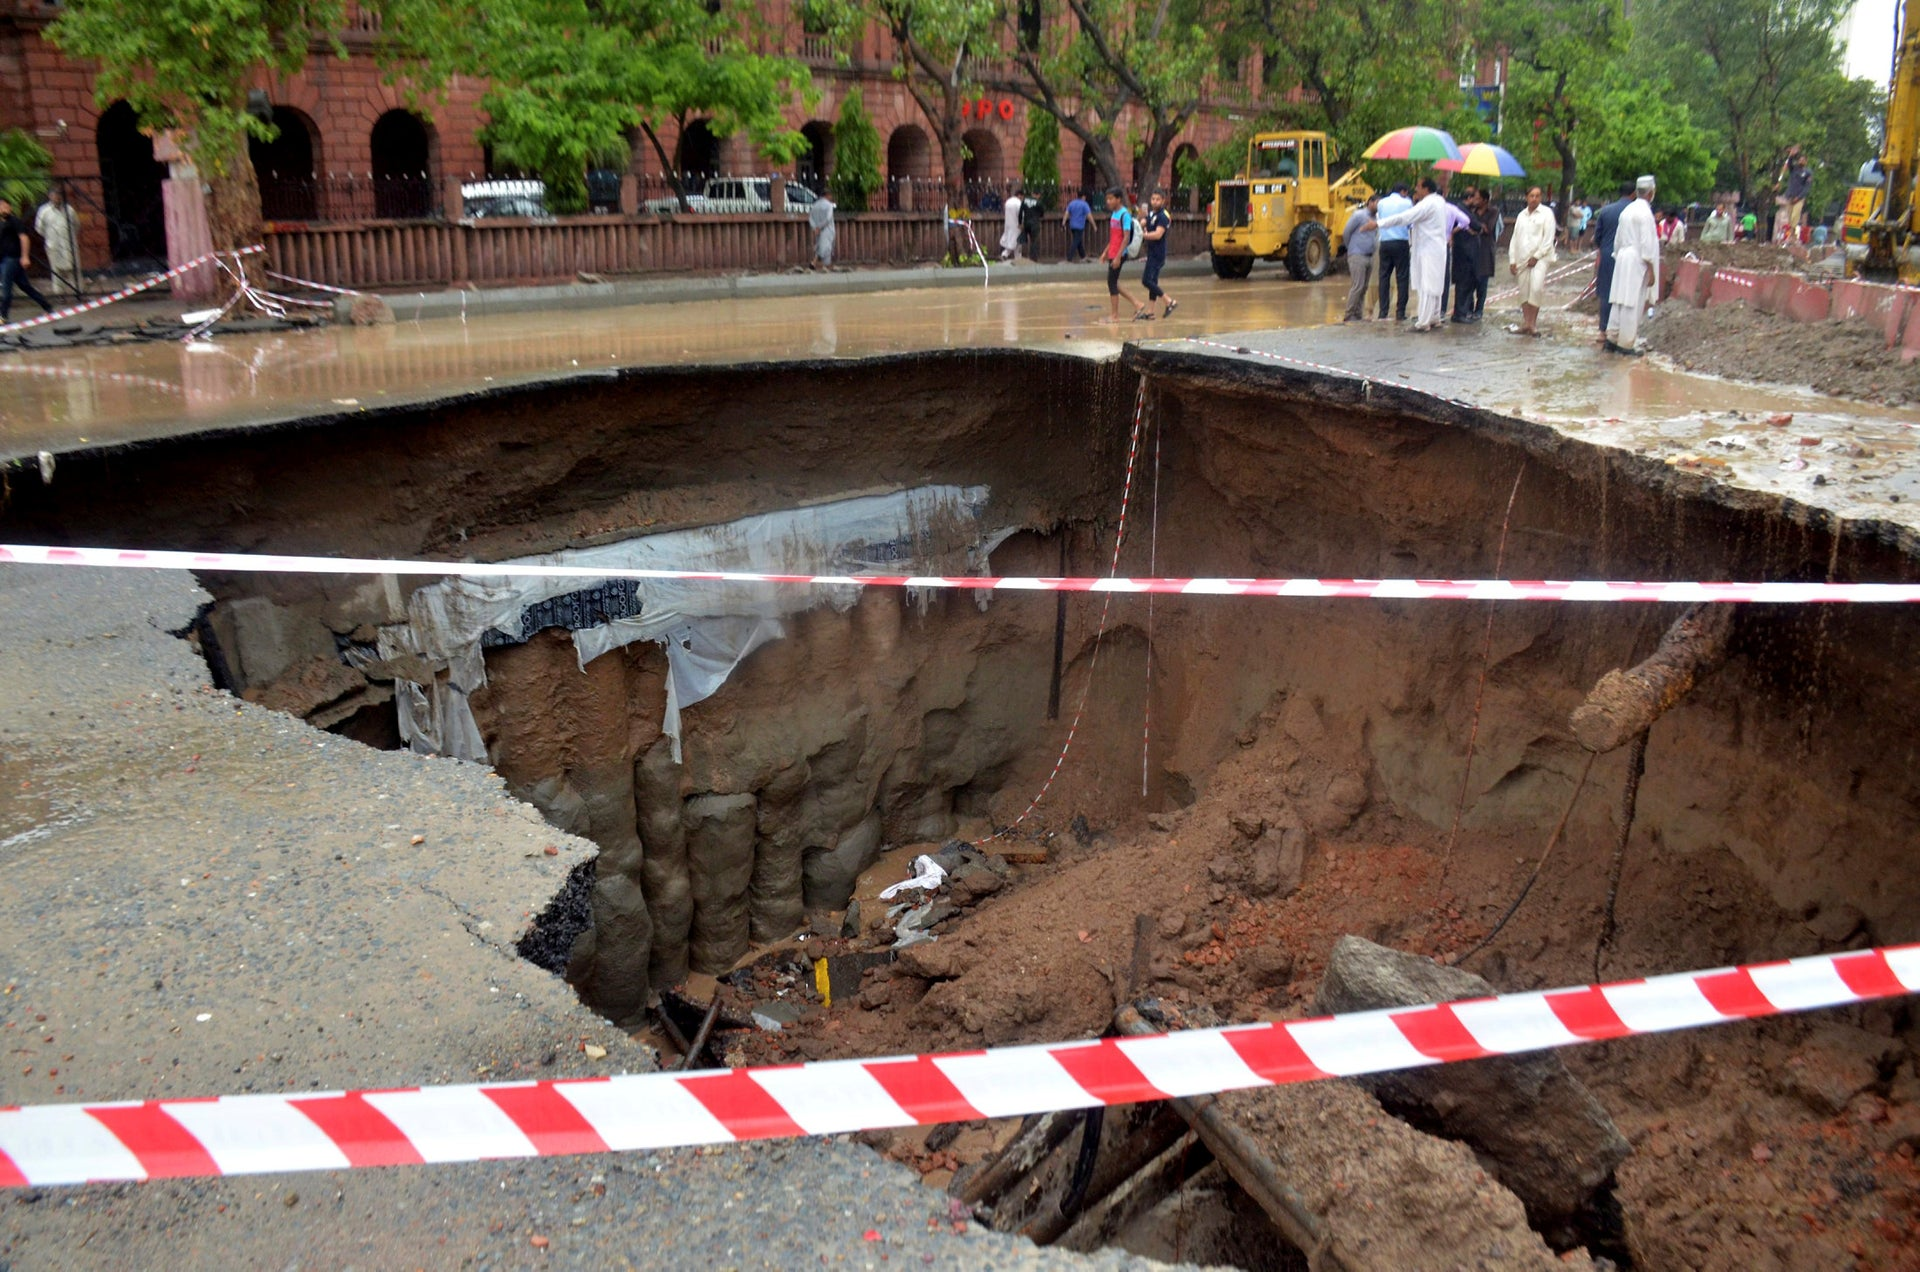 Residents look at a road caved in due to heavy rain fall in Lahore, Pakistan, Tuesday, July 3, 2018. Torrential monsoon rains lashed many cities and towns across Pakistan before dawn Tuesday, flooding streets and killing six people, as authorities struggled to restore normalcy in rain-affected areas.